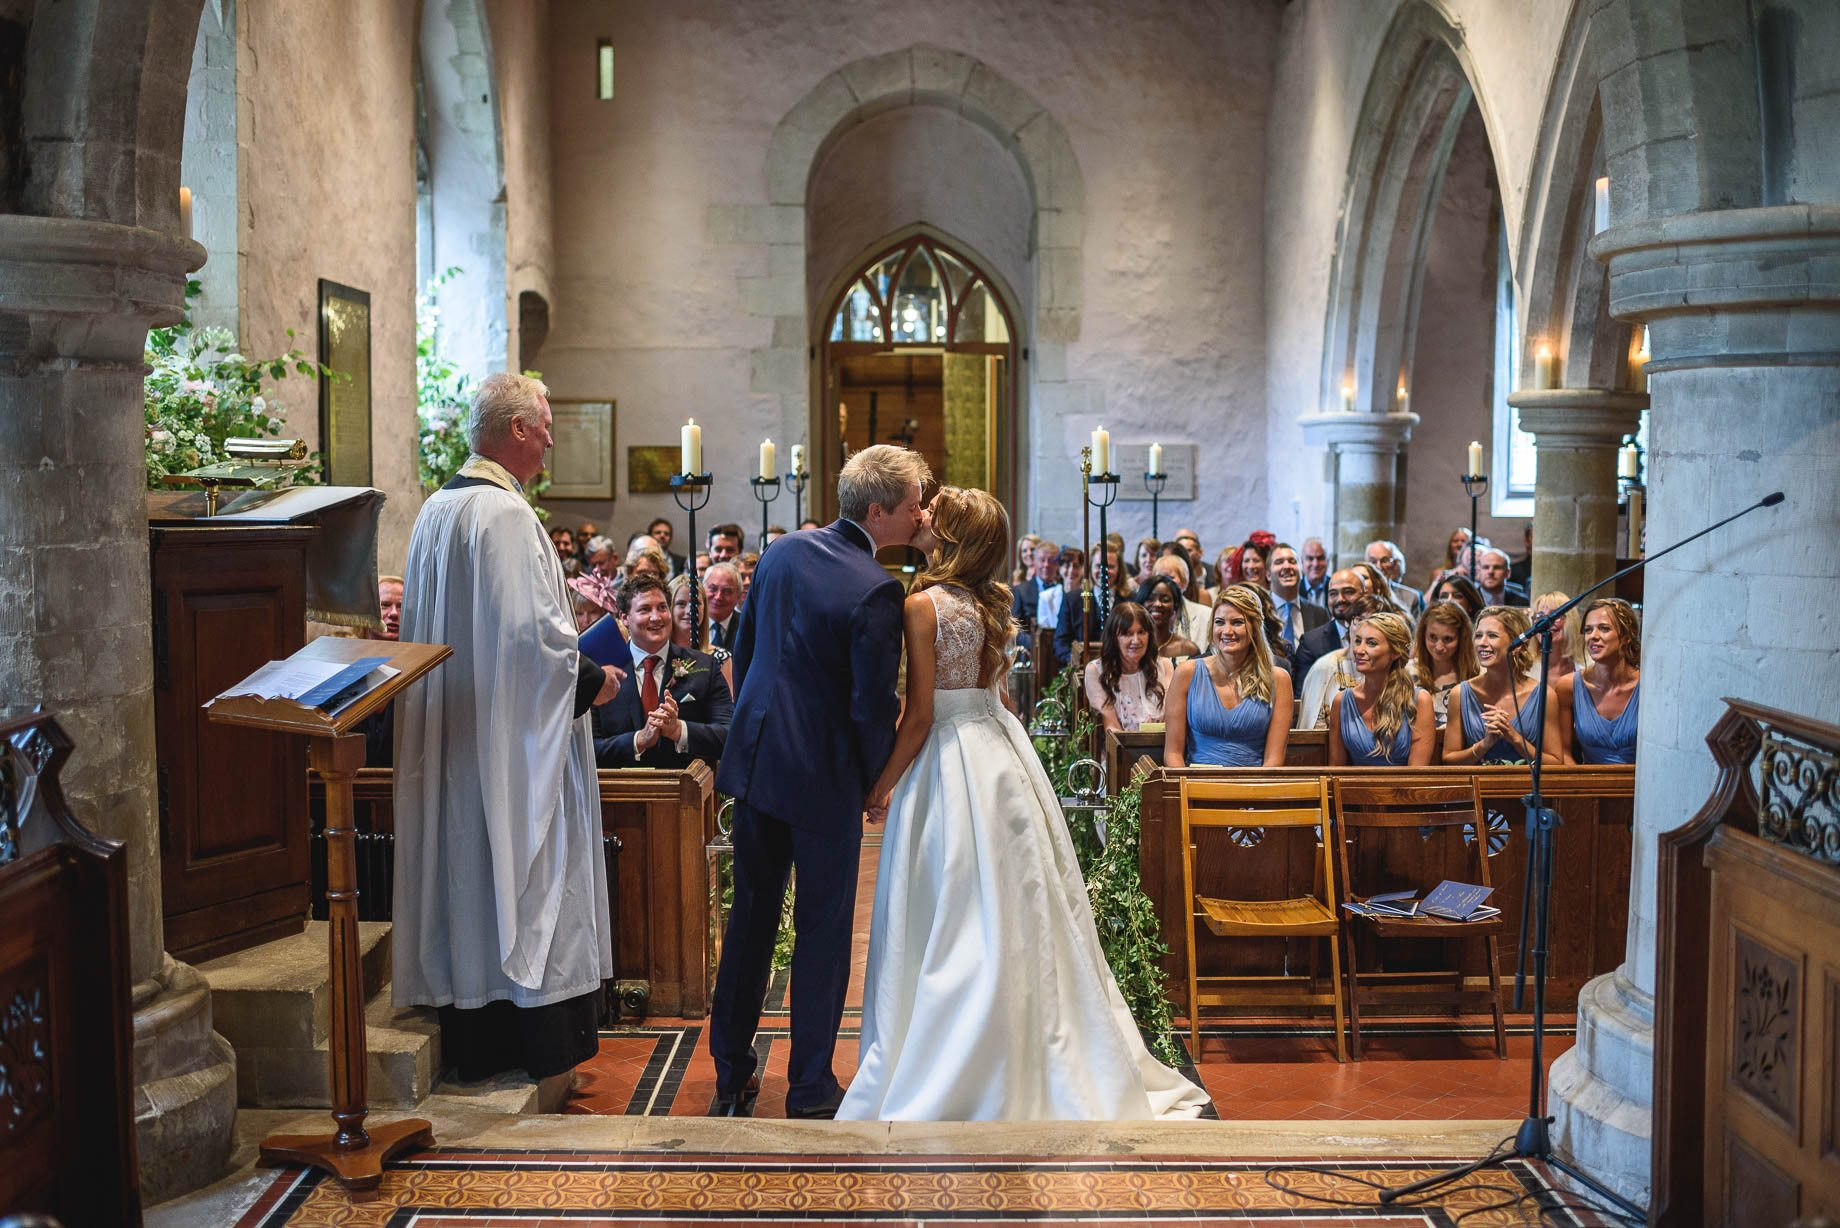 surrey-wedding-photography-guy-collier-photography-claire-and-tom-84-of-227